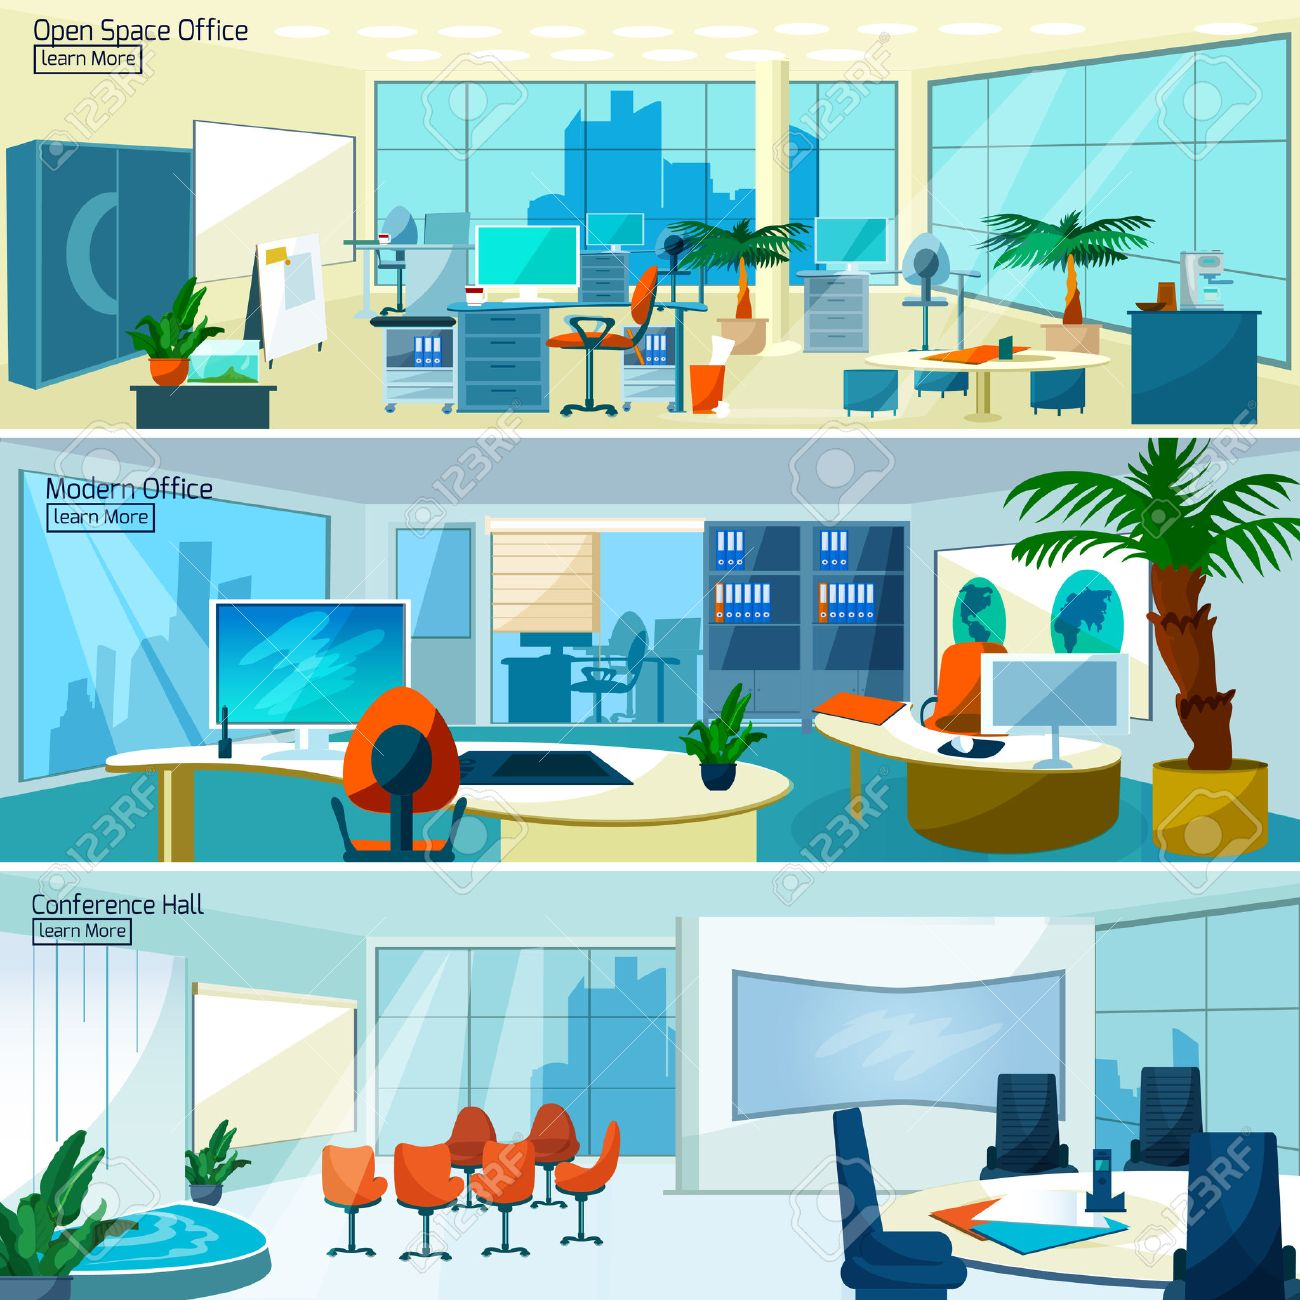 Office interiors horizontal banners set with conference hall and open space office with modern furniture vector illustration - 50704472